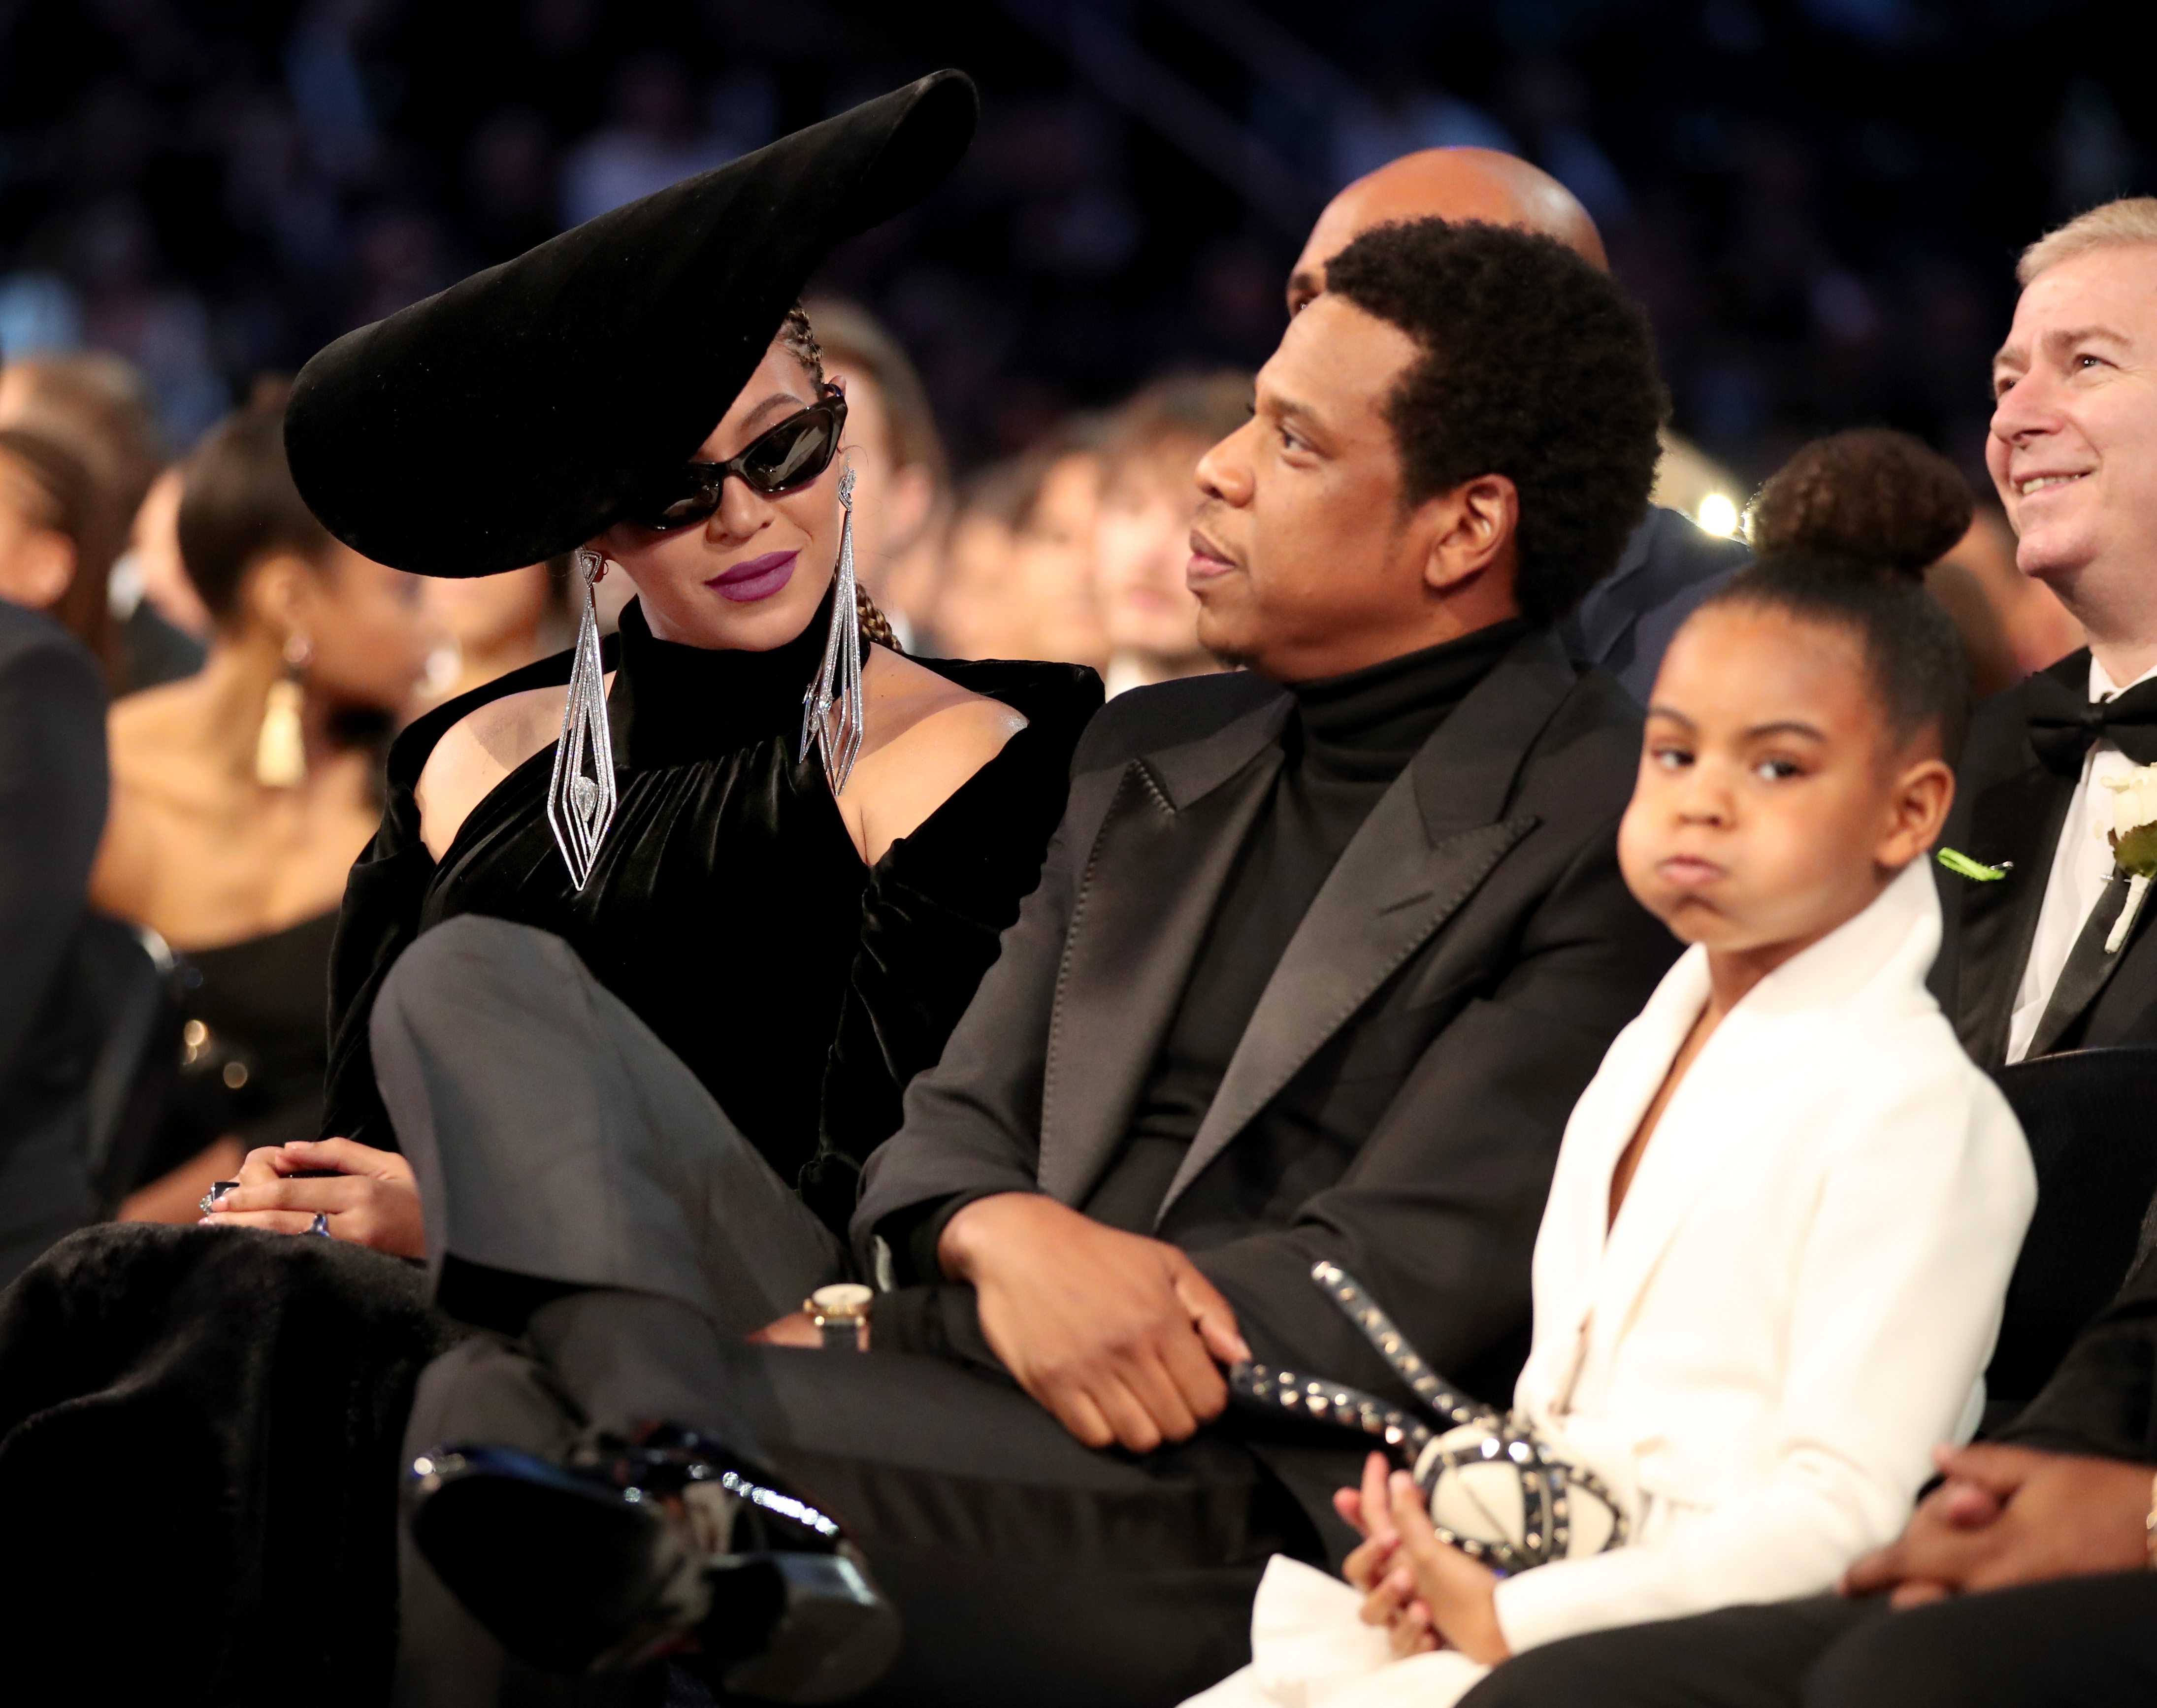 Beyonce, Jay-Z, and Blue Ivy Carter at the 60th GRAMMY Awards in 2018